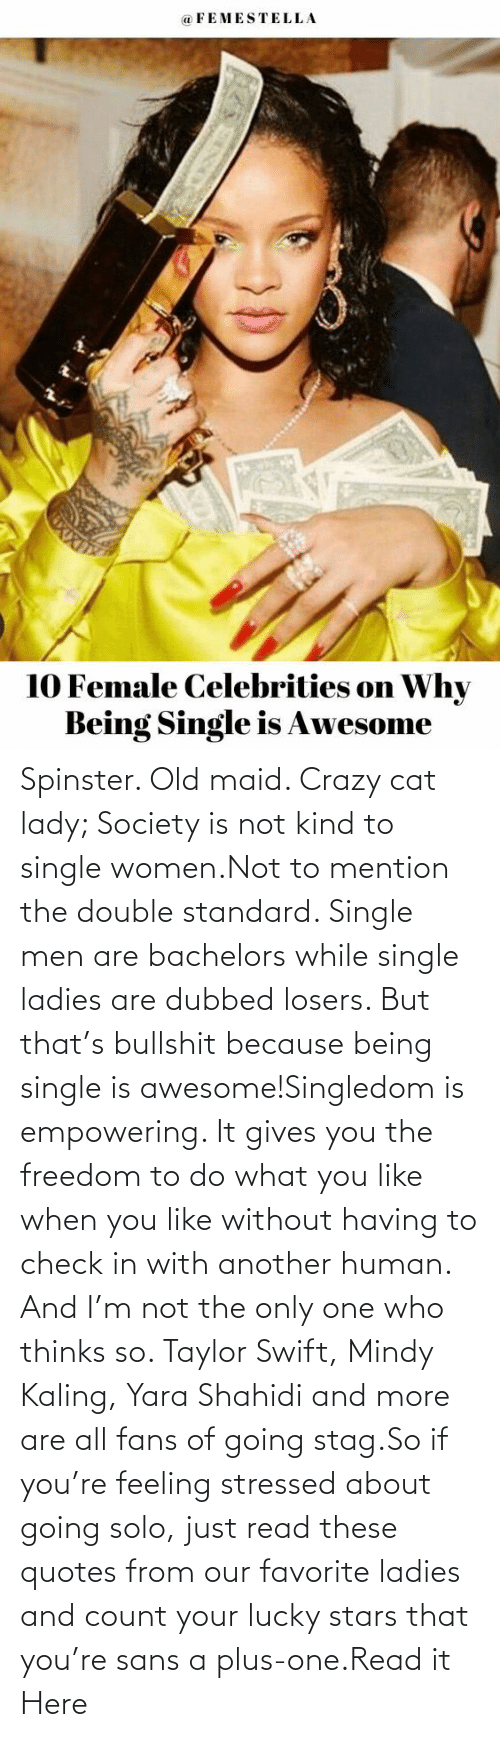 Only One: Spinster. Old maid. Crazy cat lady; Society is not kind to single women.Not to mention the double standard. Single men are bachelors while single ladies are dubbed losers. But that's bullshit because being single is awesome!Singledom is empowering. It gives you the freedom to do what you like when you like without having to check in with another human. And I'm not the only one who thinks so. Taylor Swift, Mindy Kaling, Yara Shahidi and more are all fans of going stag.So if you're feeling stressed about going solo, just read these quotes from our favorite ladies and count your lucky stars that you're sans a plus-one.Read it Here